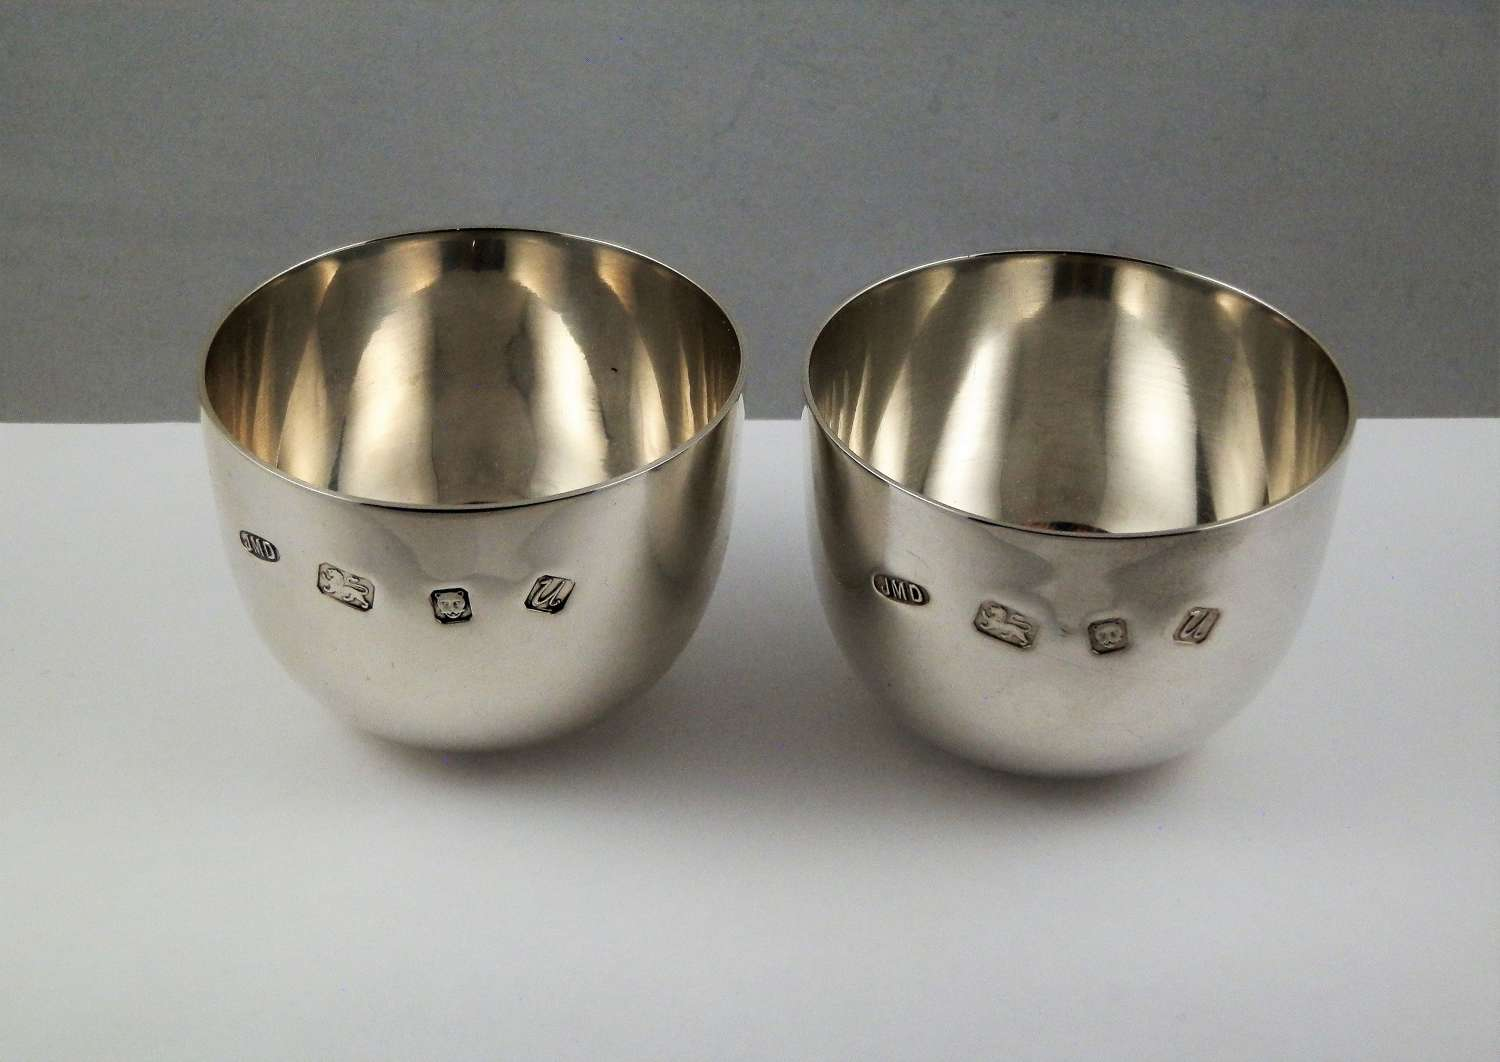 Pair of silver tumbler cups, London 1994